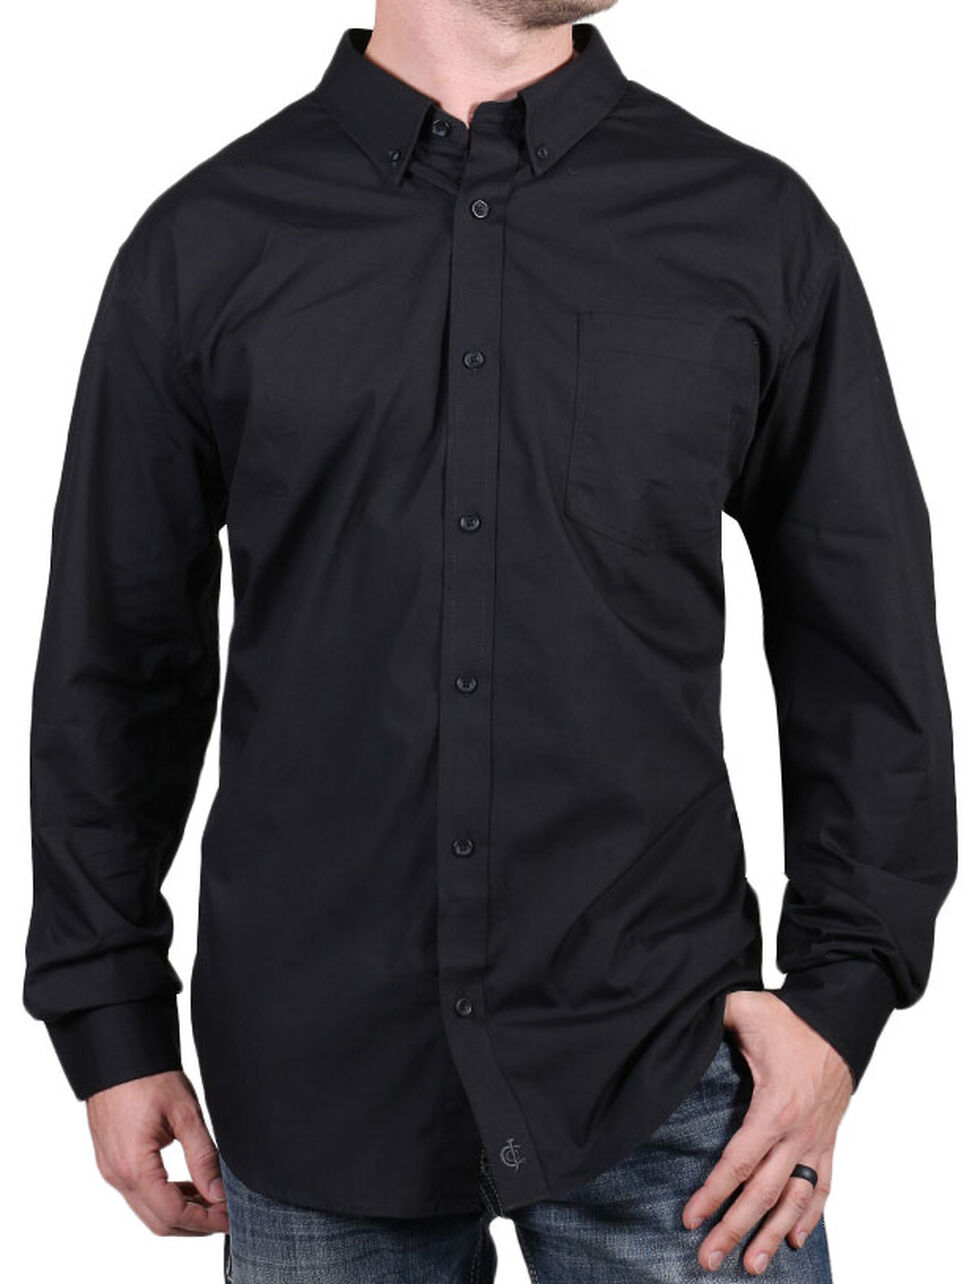 Cody James Core Men's Chute Black Long Sleeve Shirt, Black, hi-res